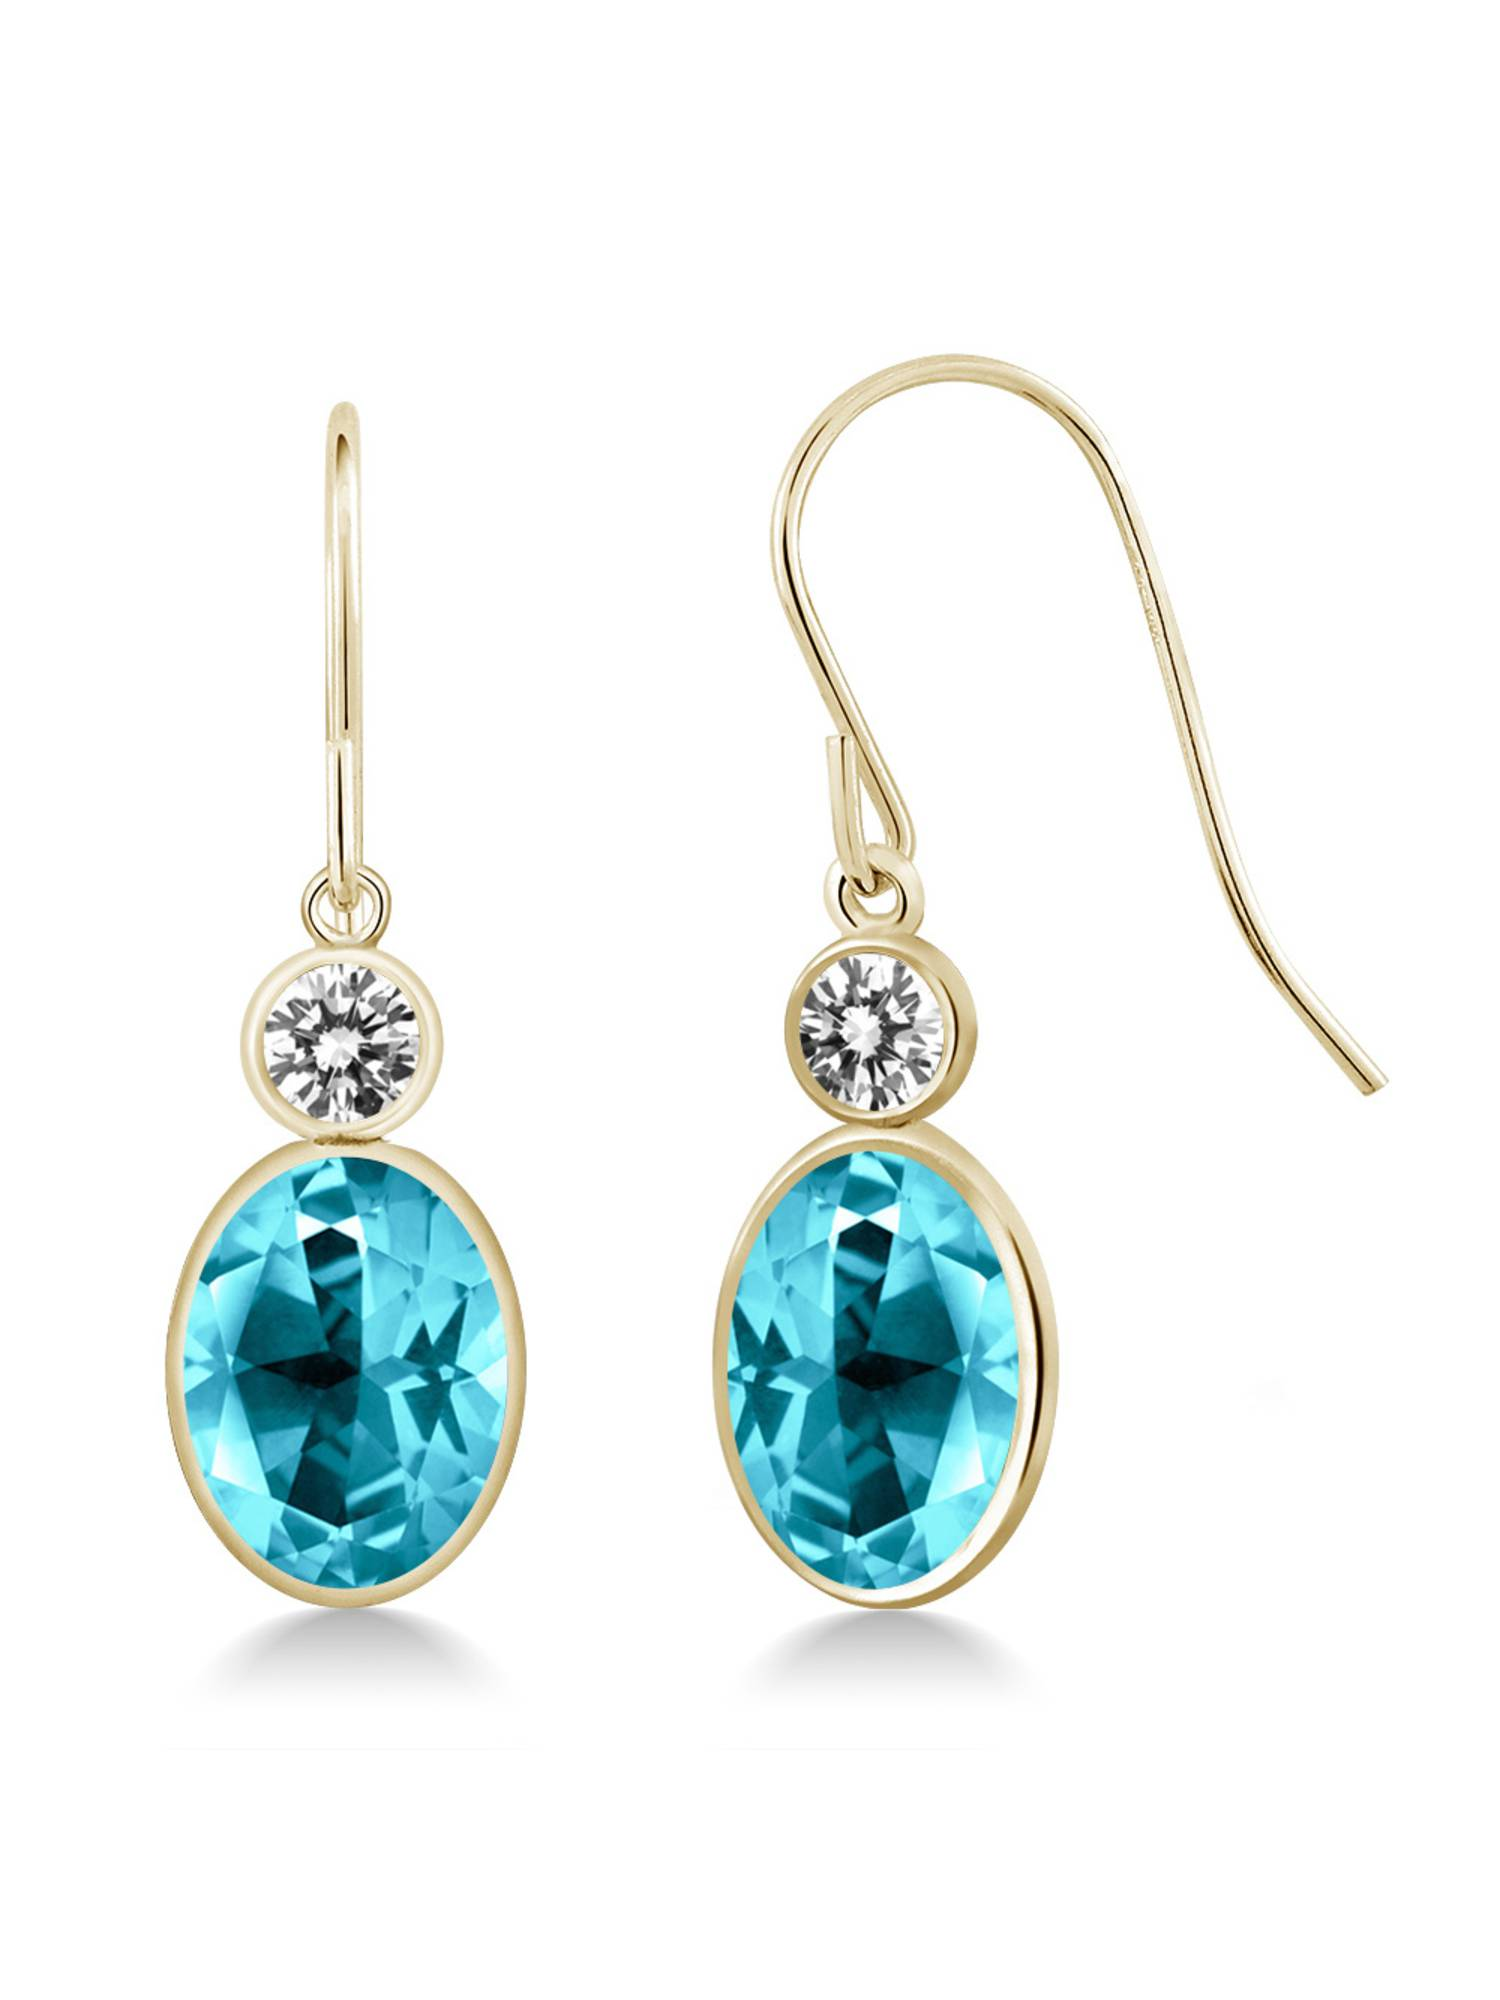 14K Yellow Gold Diamond Earrings Set with Oval Paraiba Topaz from Swarovski by